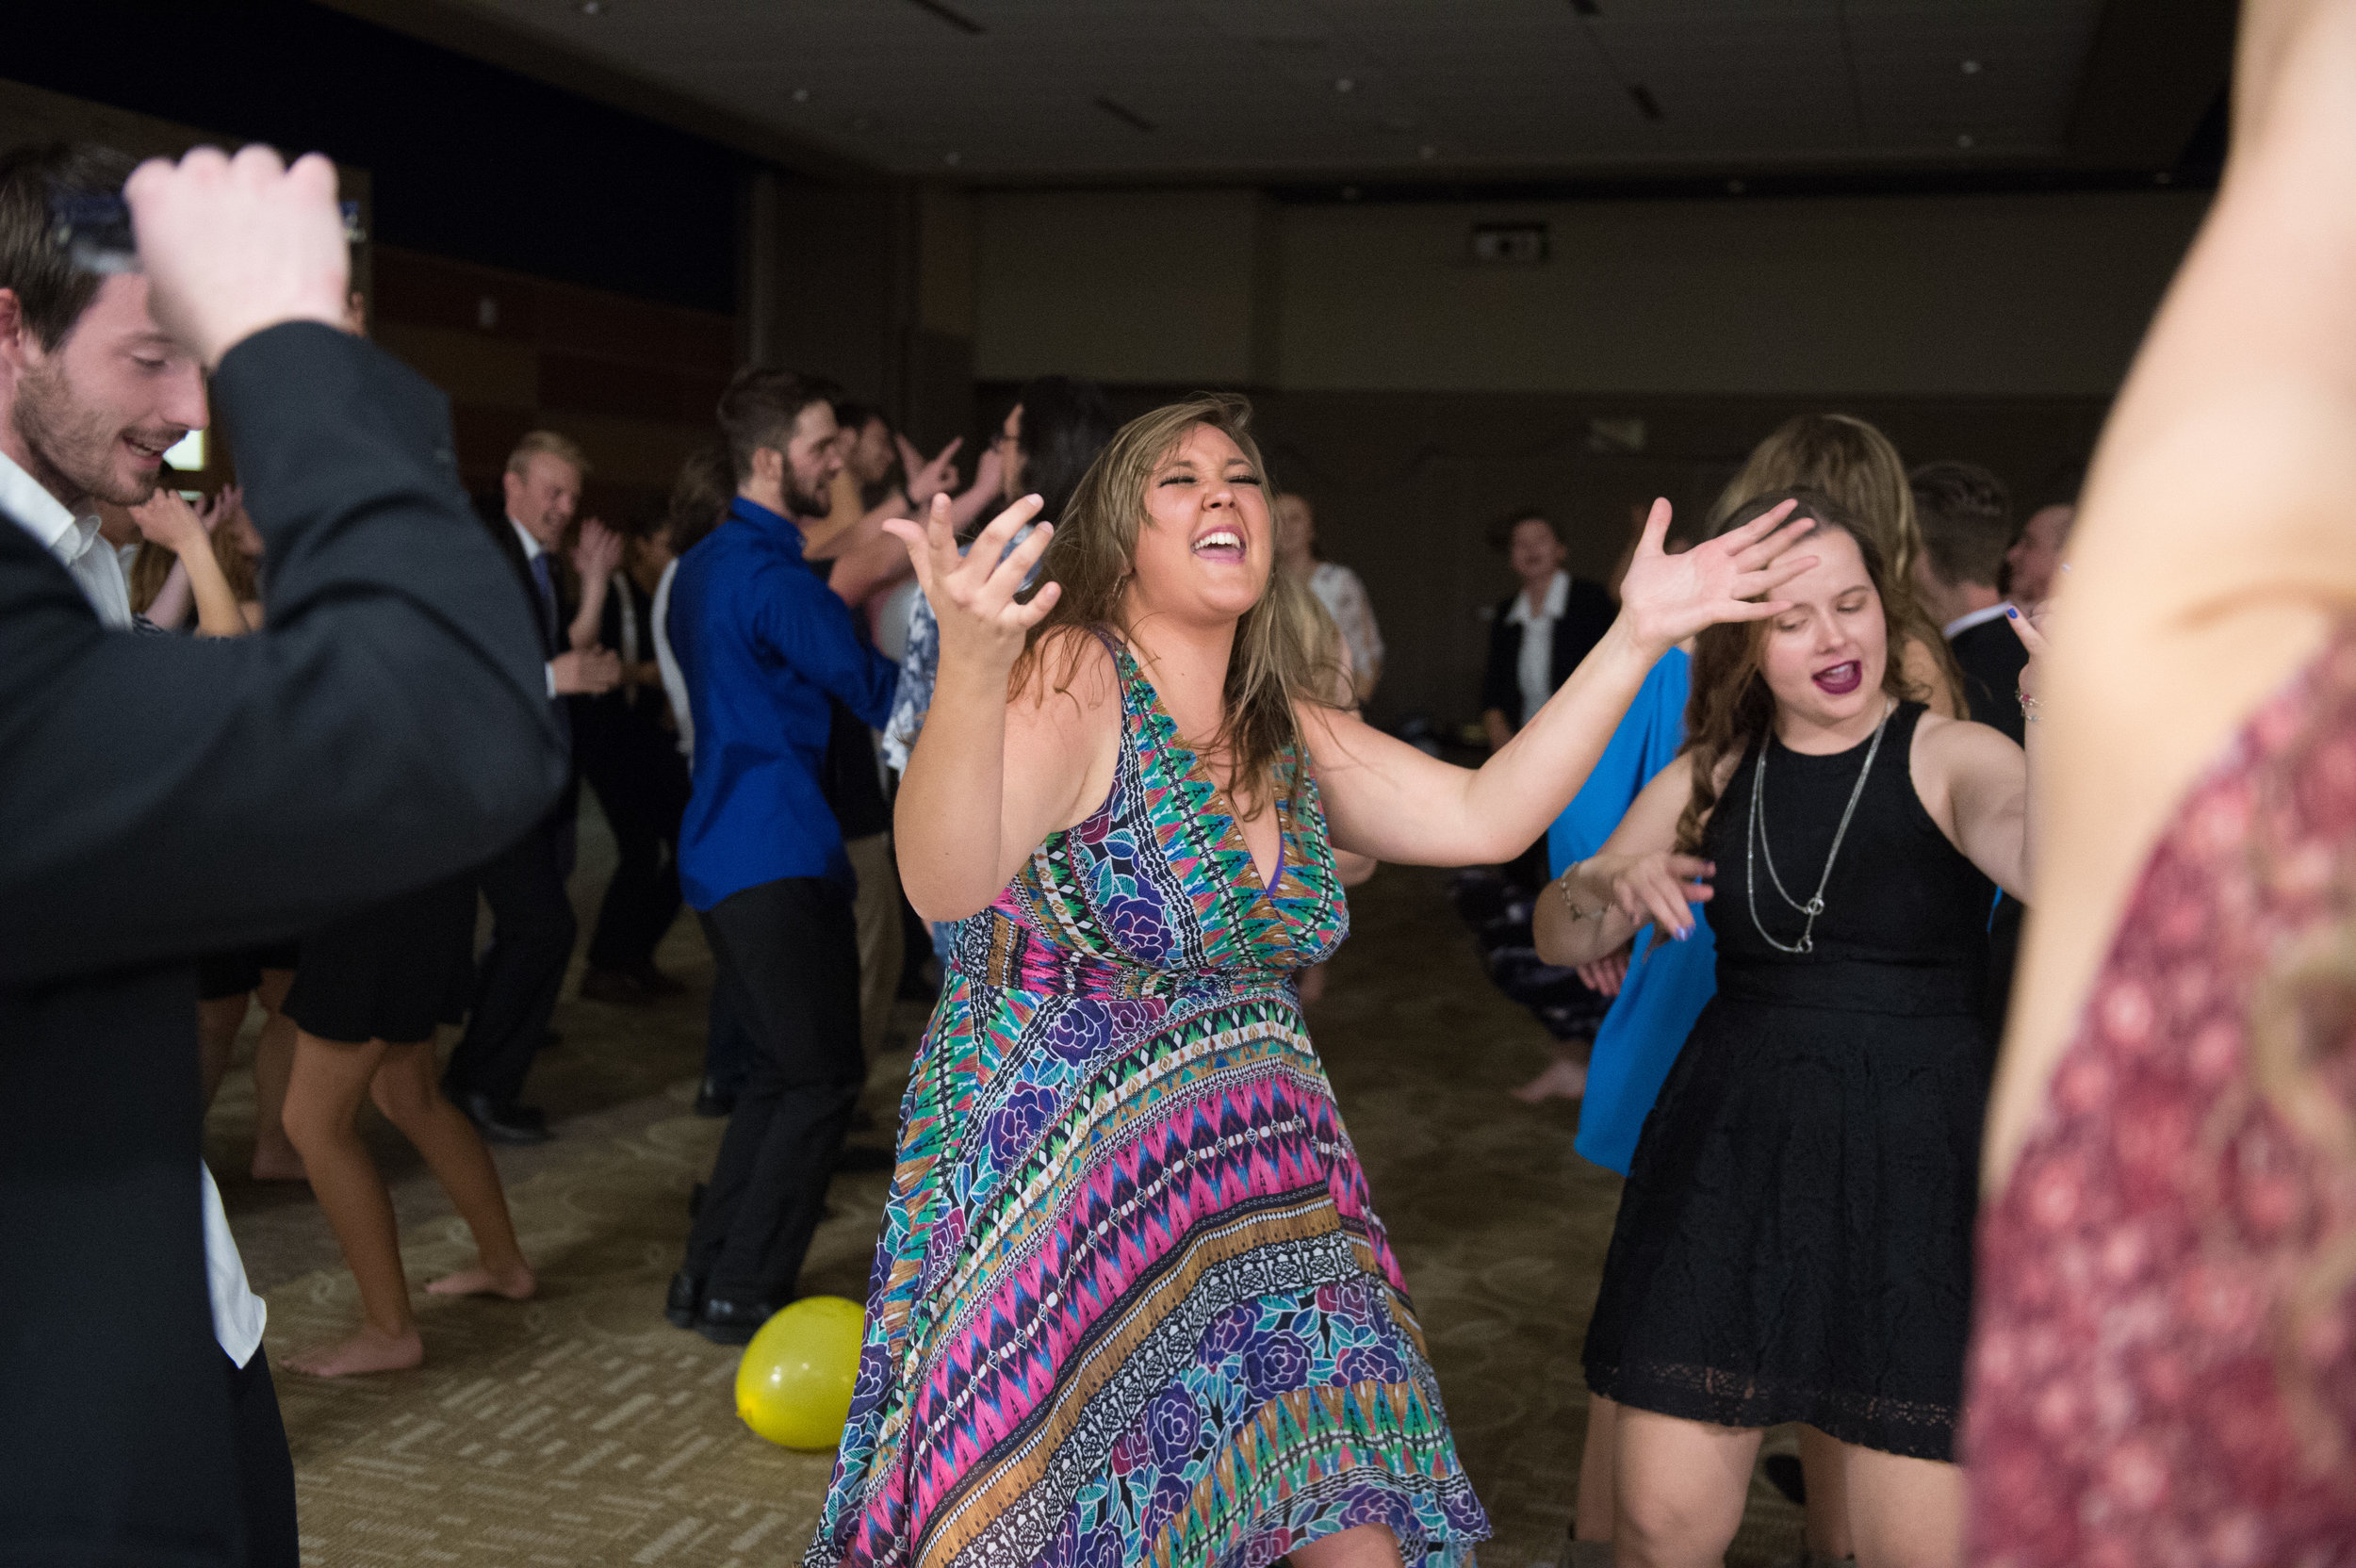 Spirit of the West mellophone player Allie Doe, center, dances during the annual band banquet in Bozeman, Mont. Sunday, Nov. 19, 2017.